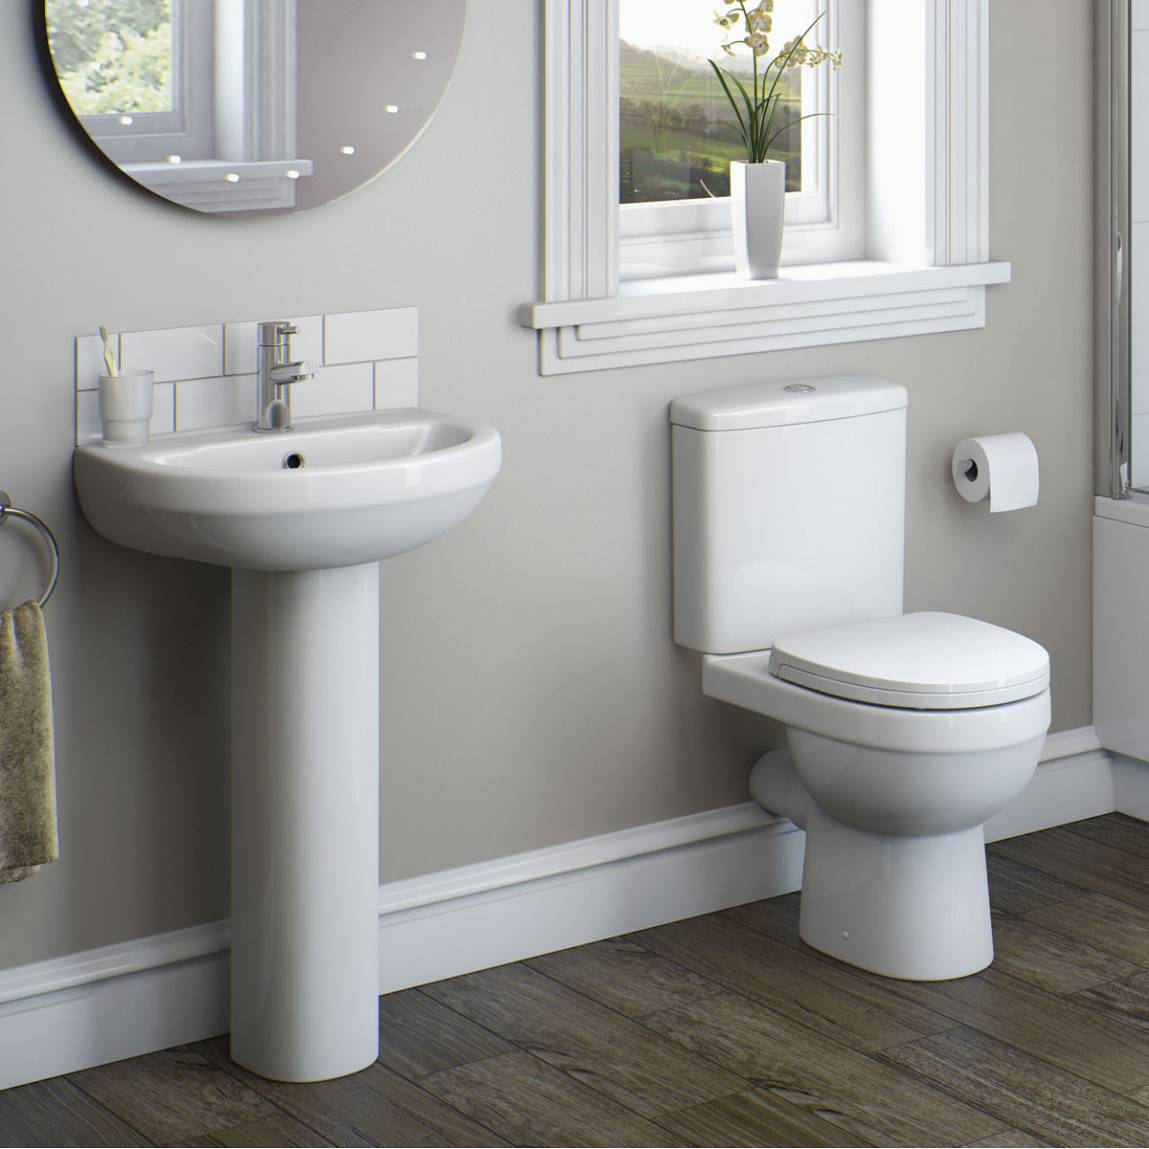 Bathroom products for small spaces for Bathroom designs for small spaces uk